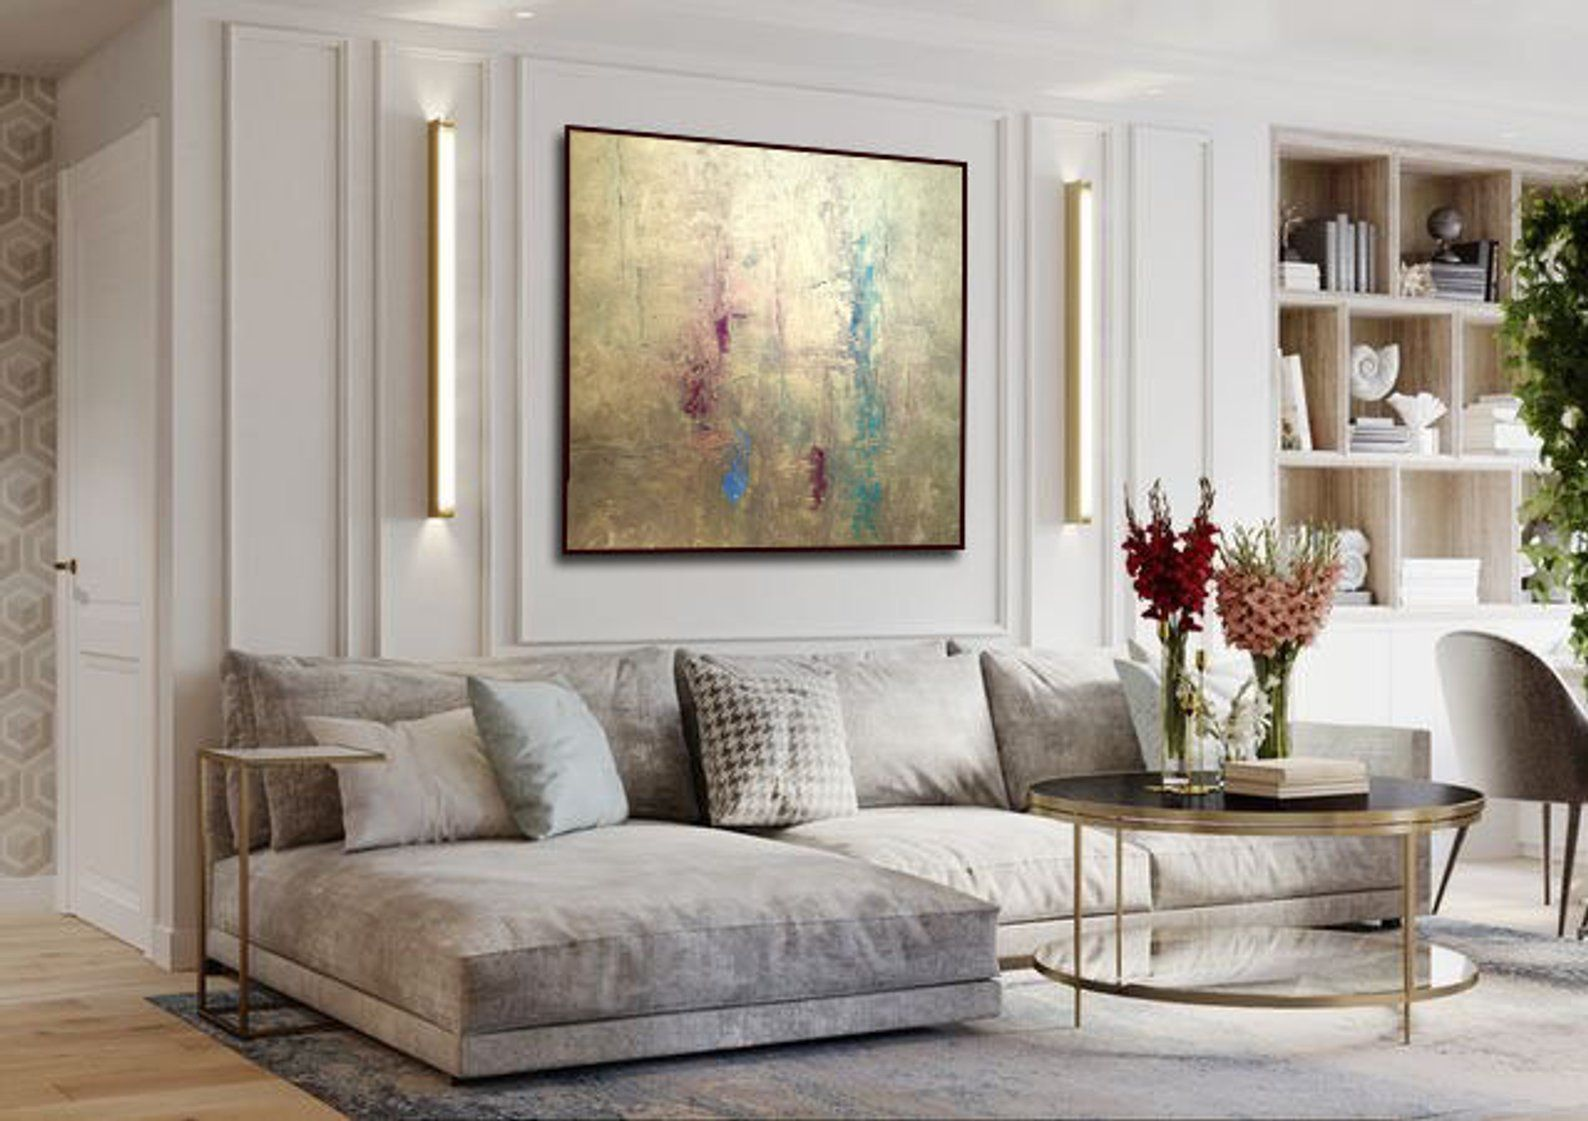 Abstract Gold Art Painting On Canvas Contemporary Art Large Abstract Art Original Artwork Modern Art Olsheart Textured Painting Wall Decor Living Room Designs Room Interior Apartment Living Room